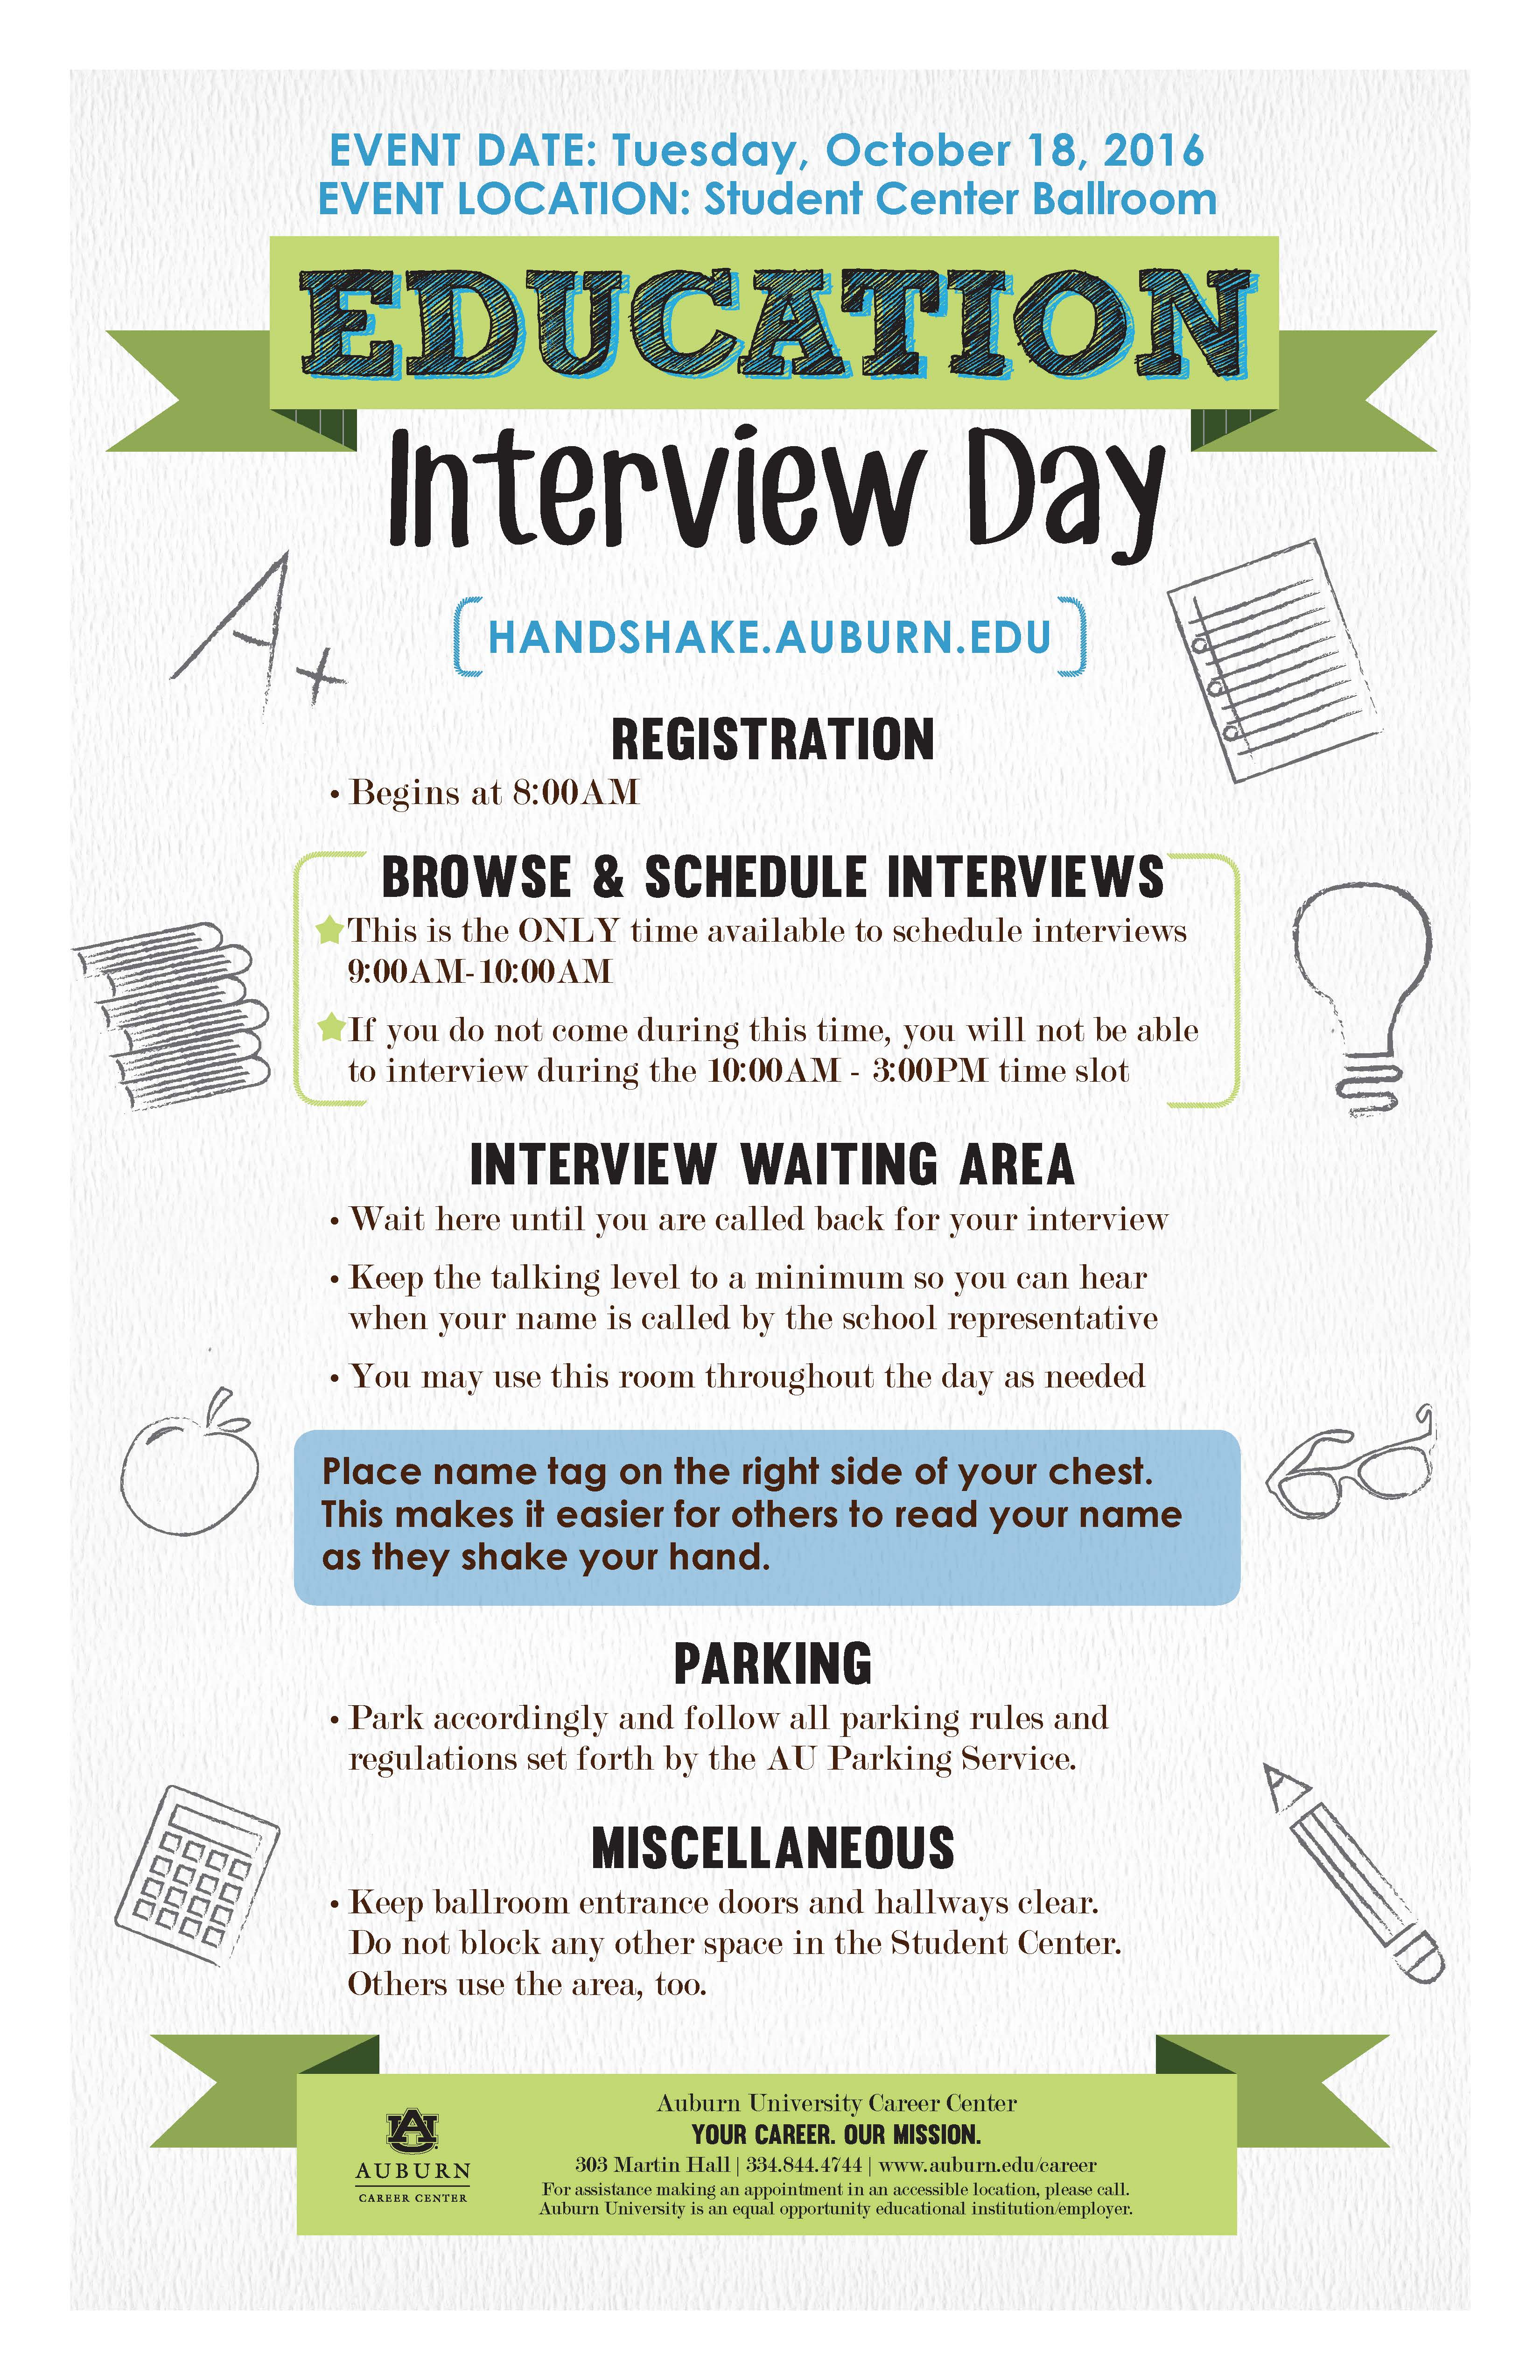 Education Interview Day Flyer